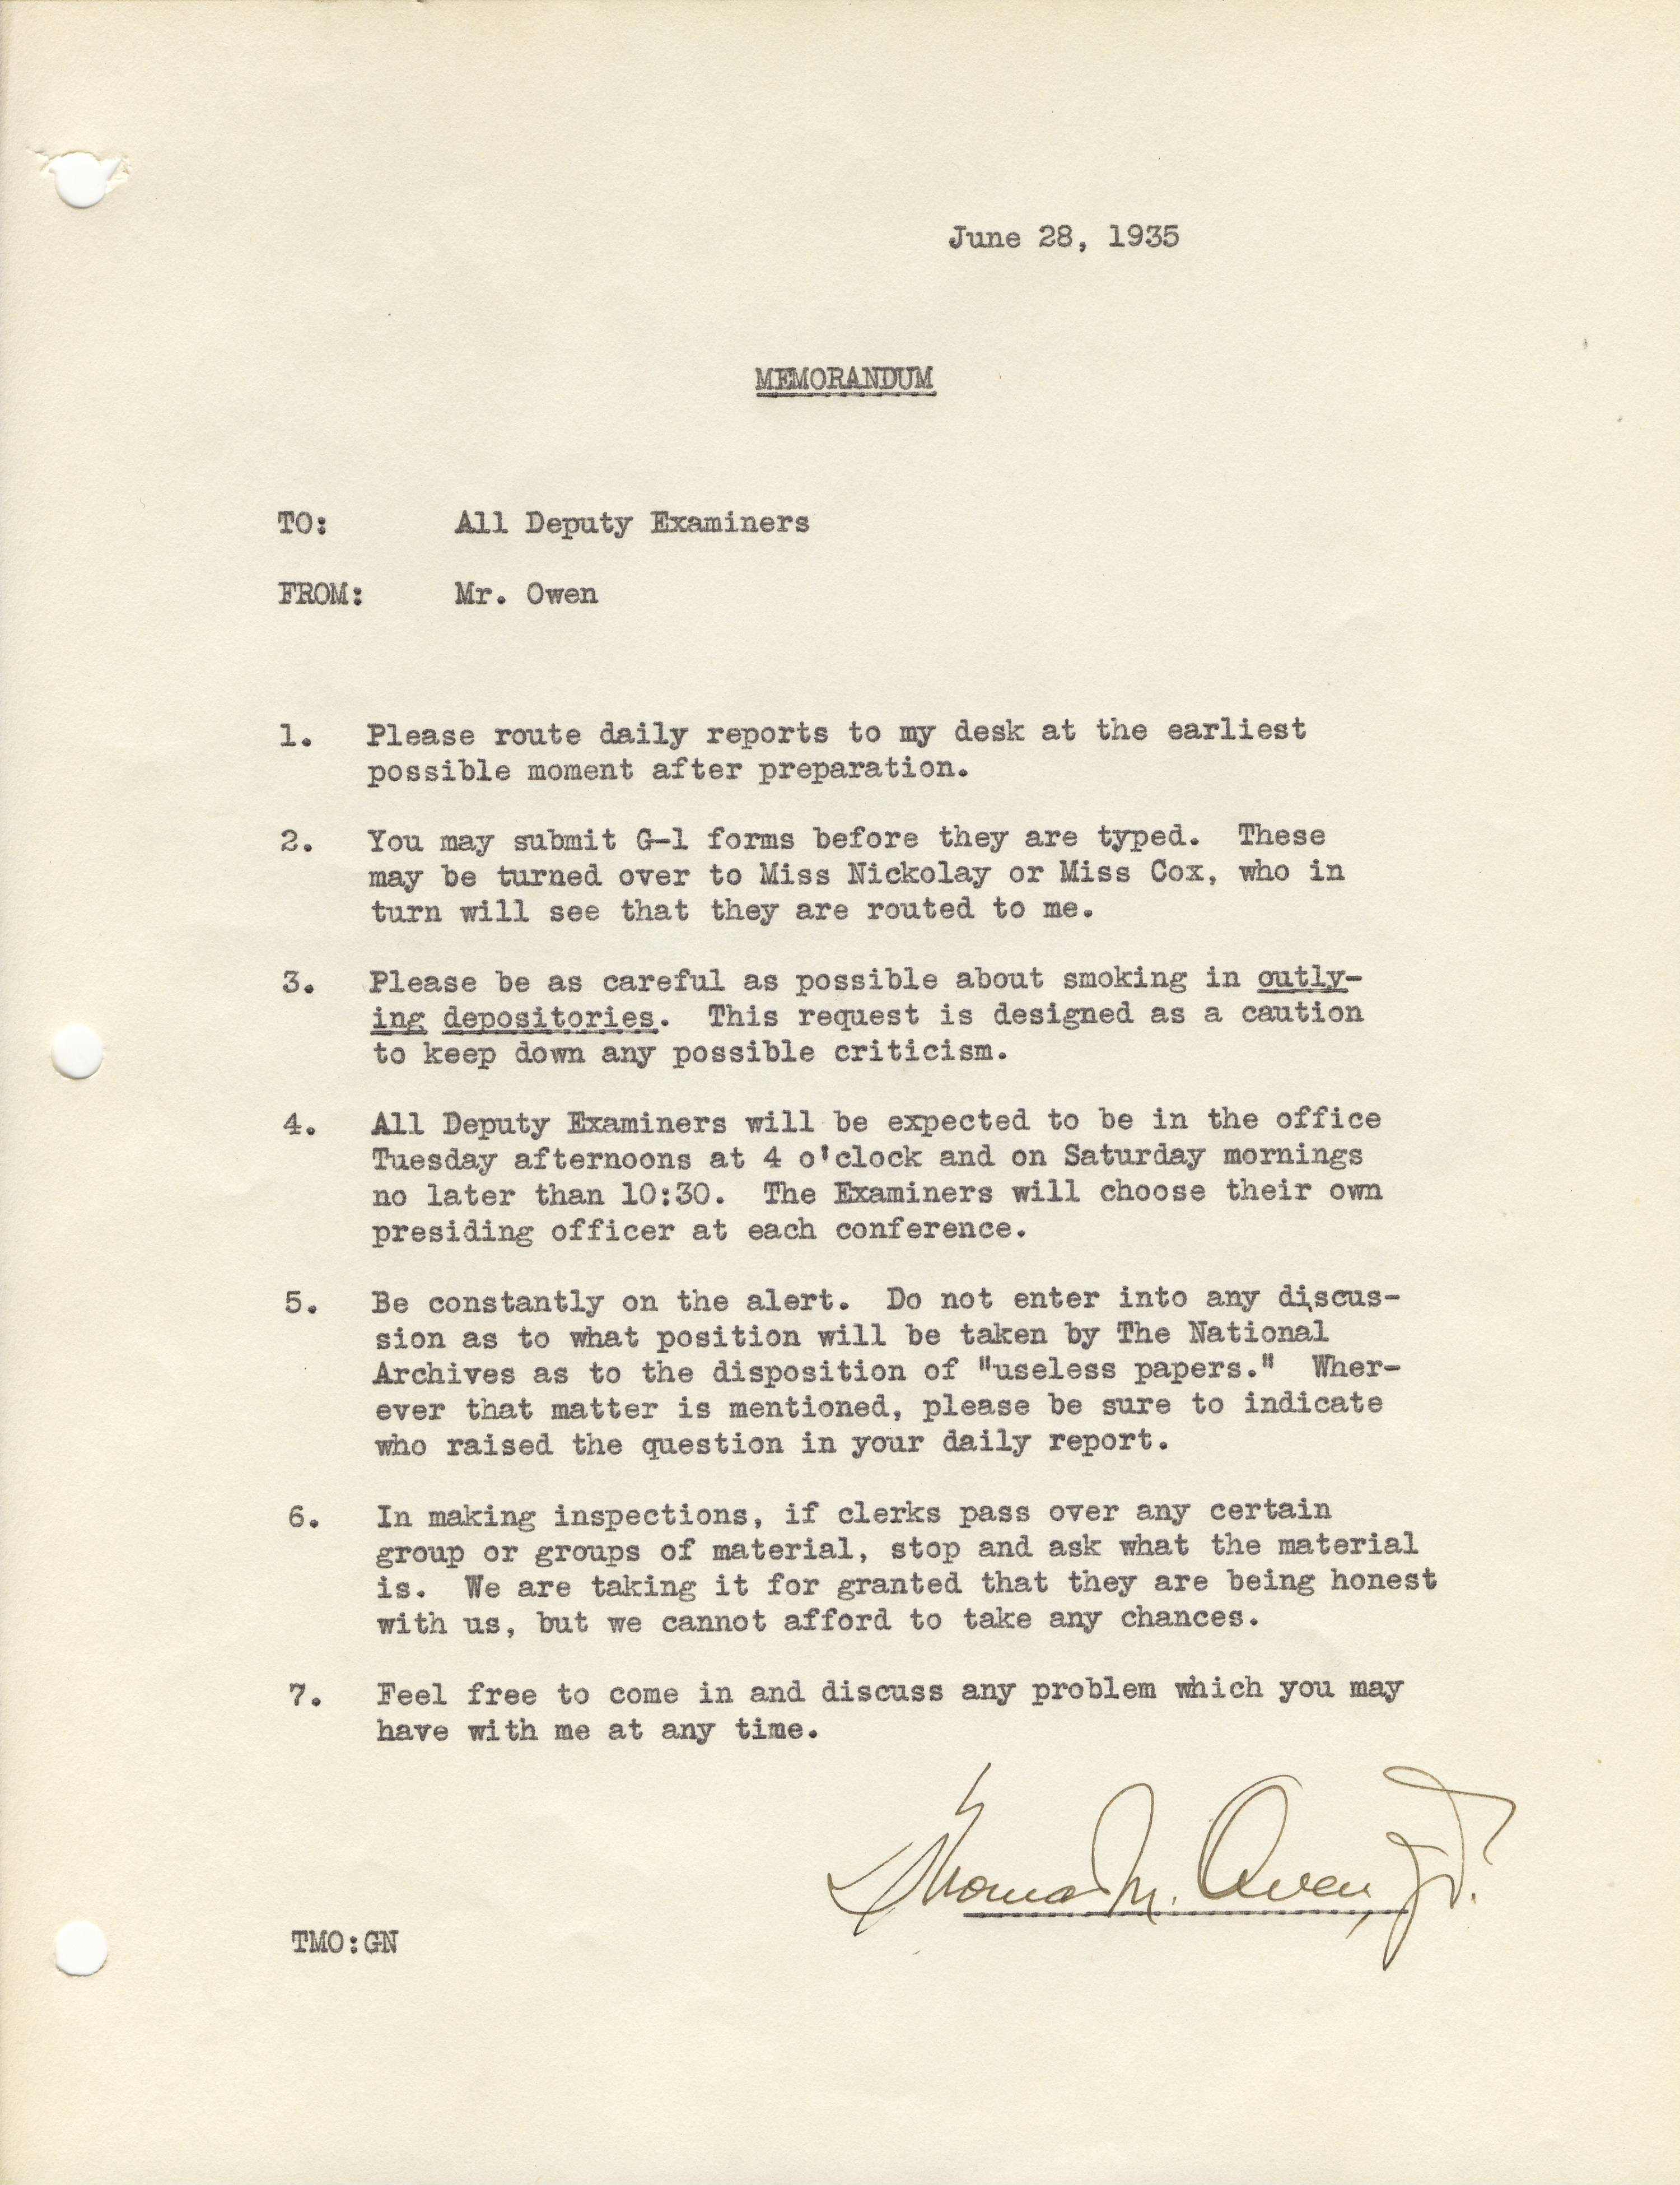 Instructions to Examiners for DC Records Surveys, June 28, 1935 - RG 64, A1 34, file Div. of Accessions Memoranda 1935-1936 Arthur Leavitt, box 1.jpg